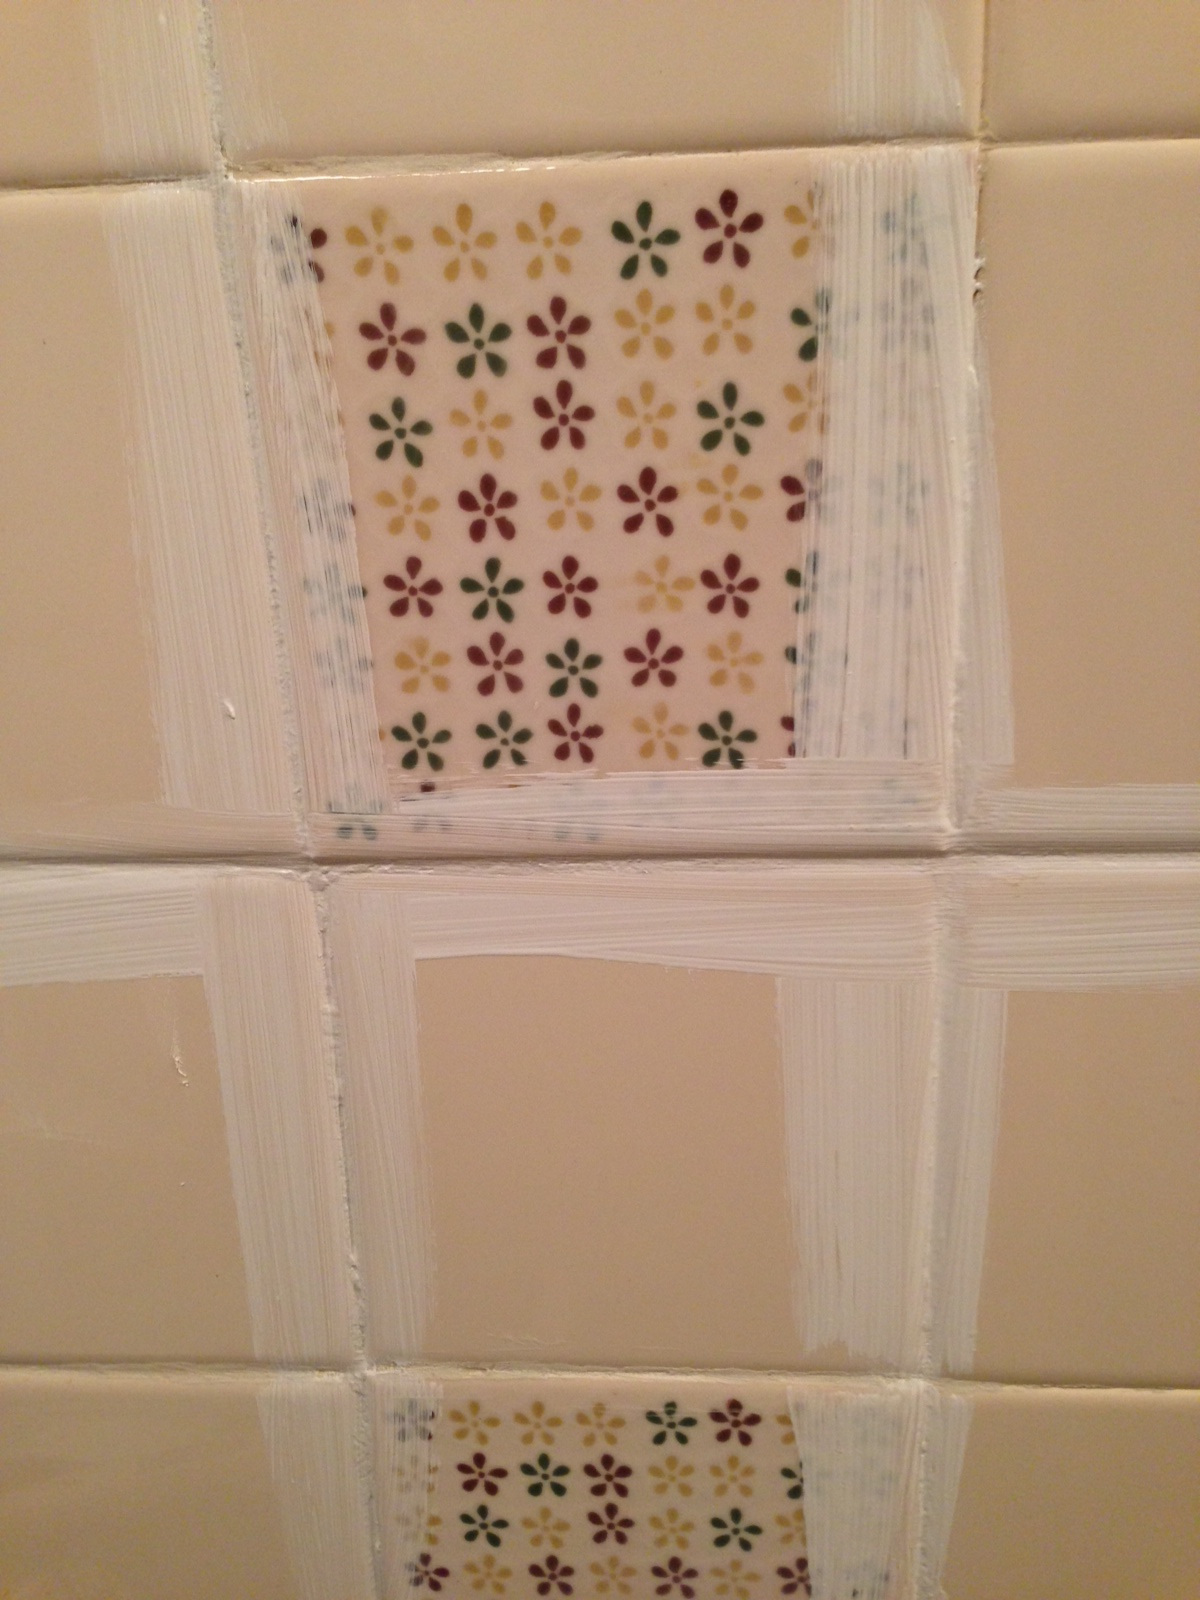 Remodelaholic a 170 bathroom makeover with painted tile how to paint tile by the learner observer on remodelaholic dailygadgetfo Image collections